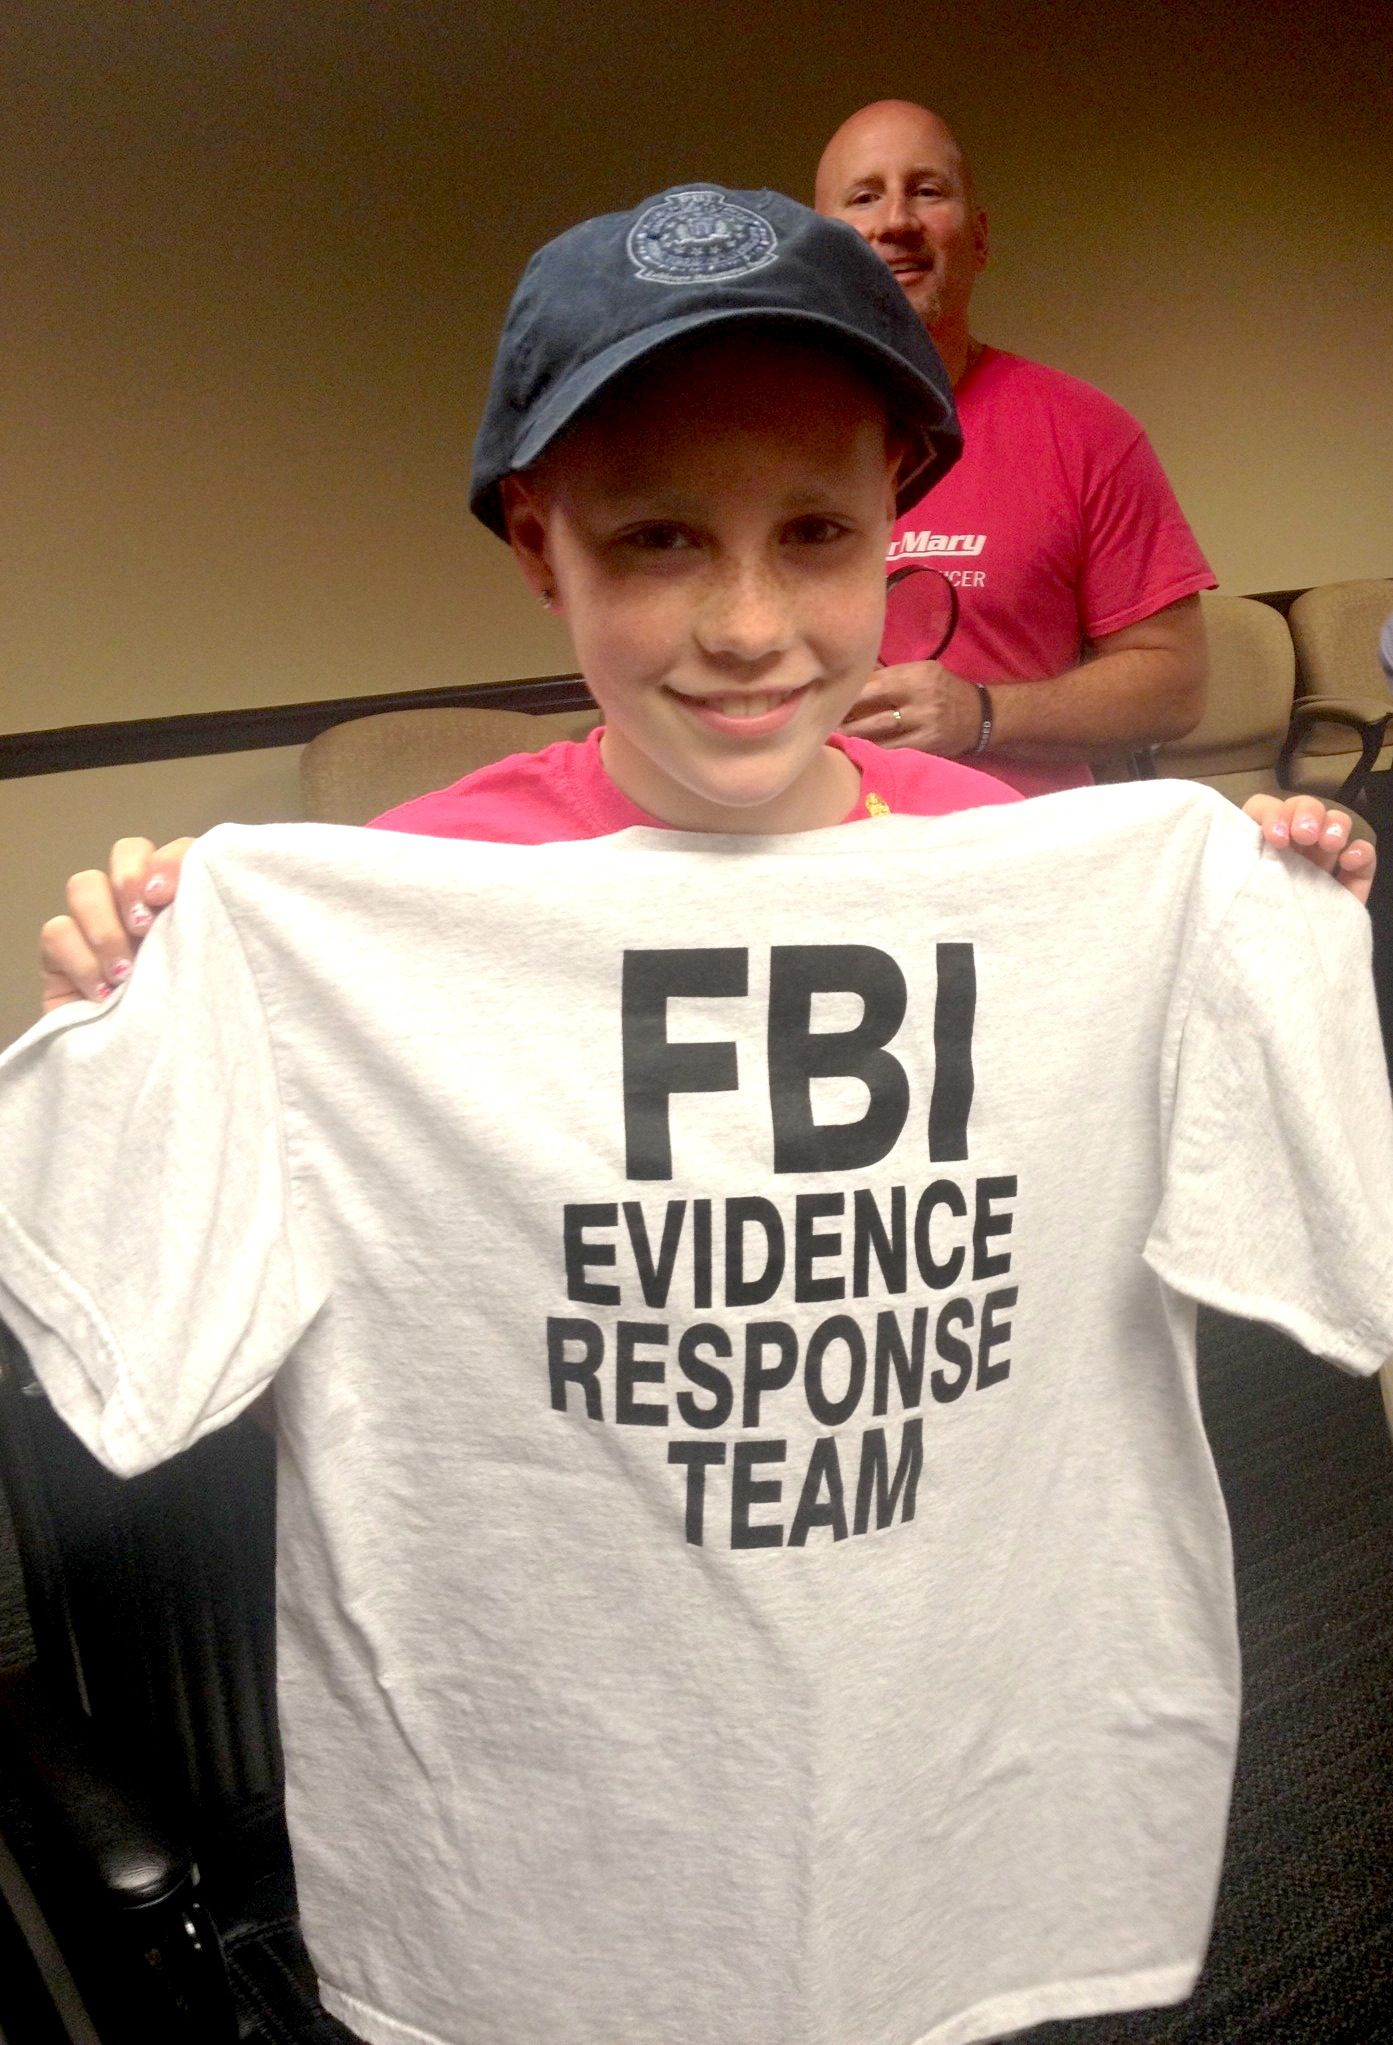 12 Year Old Mary S Dream Came True When She Got To Become A Fbi